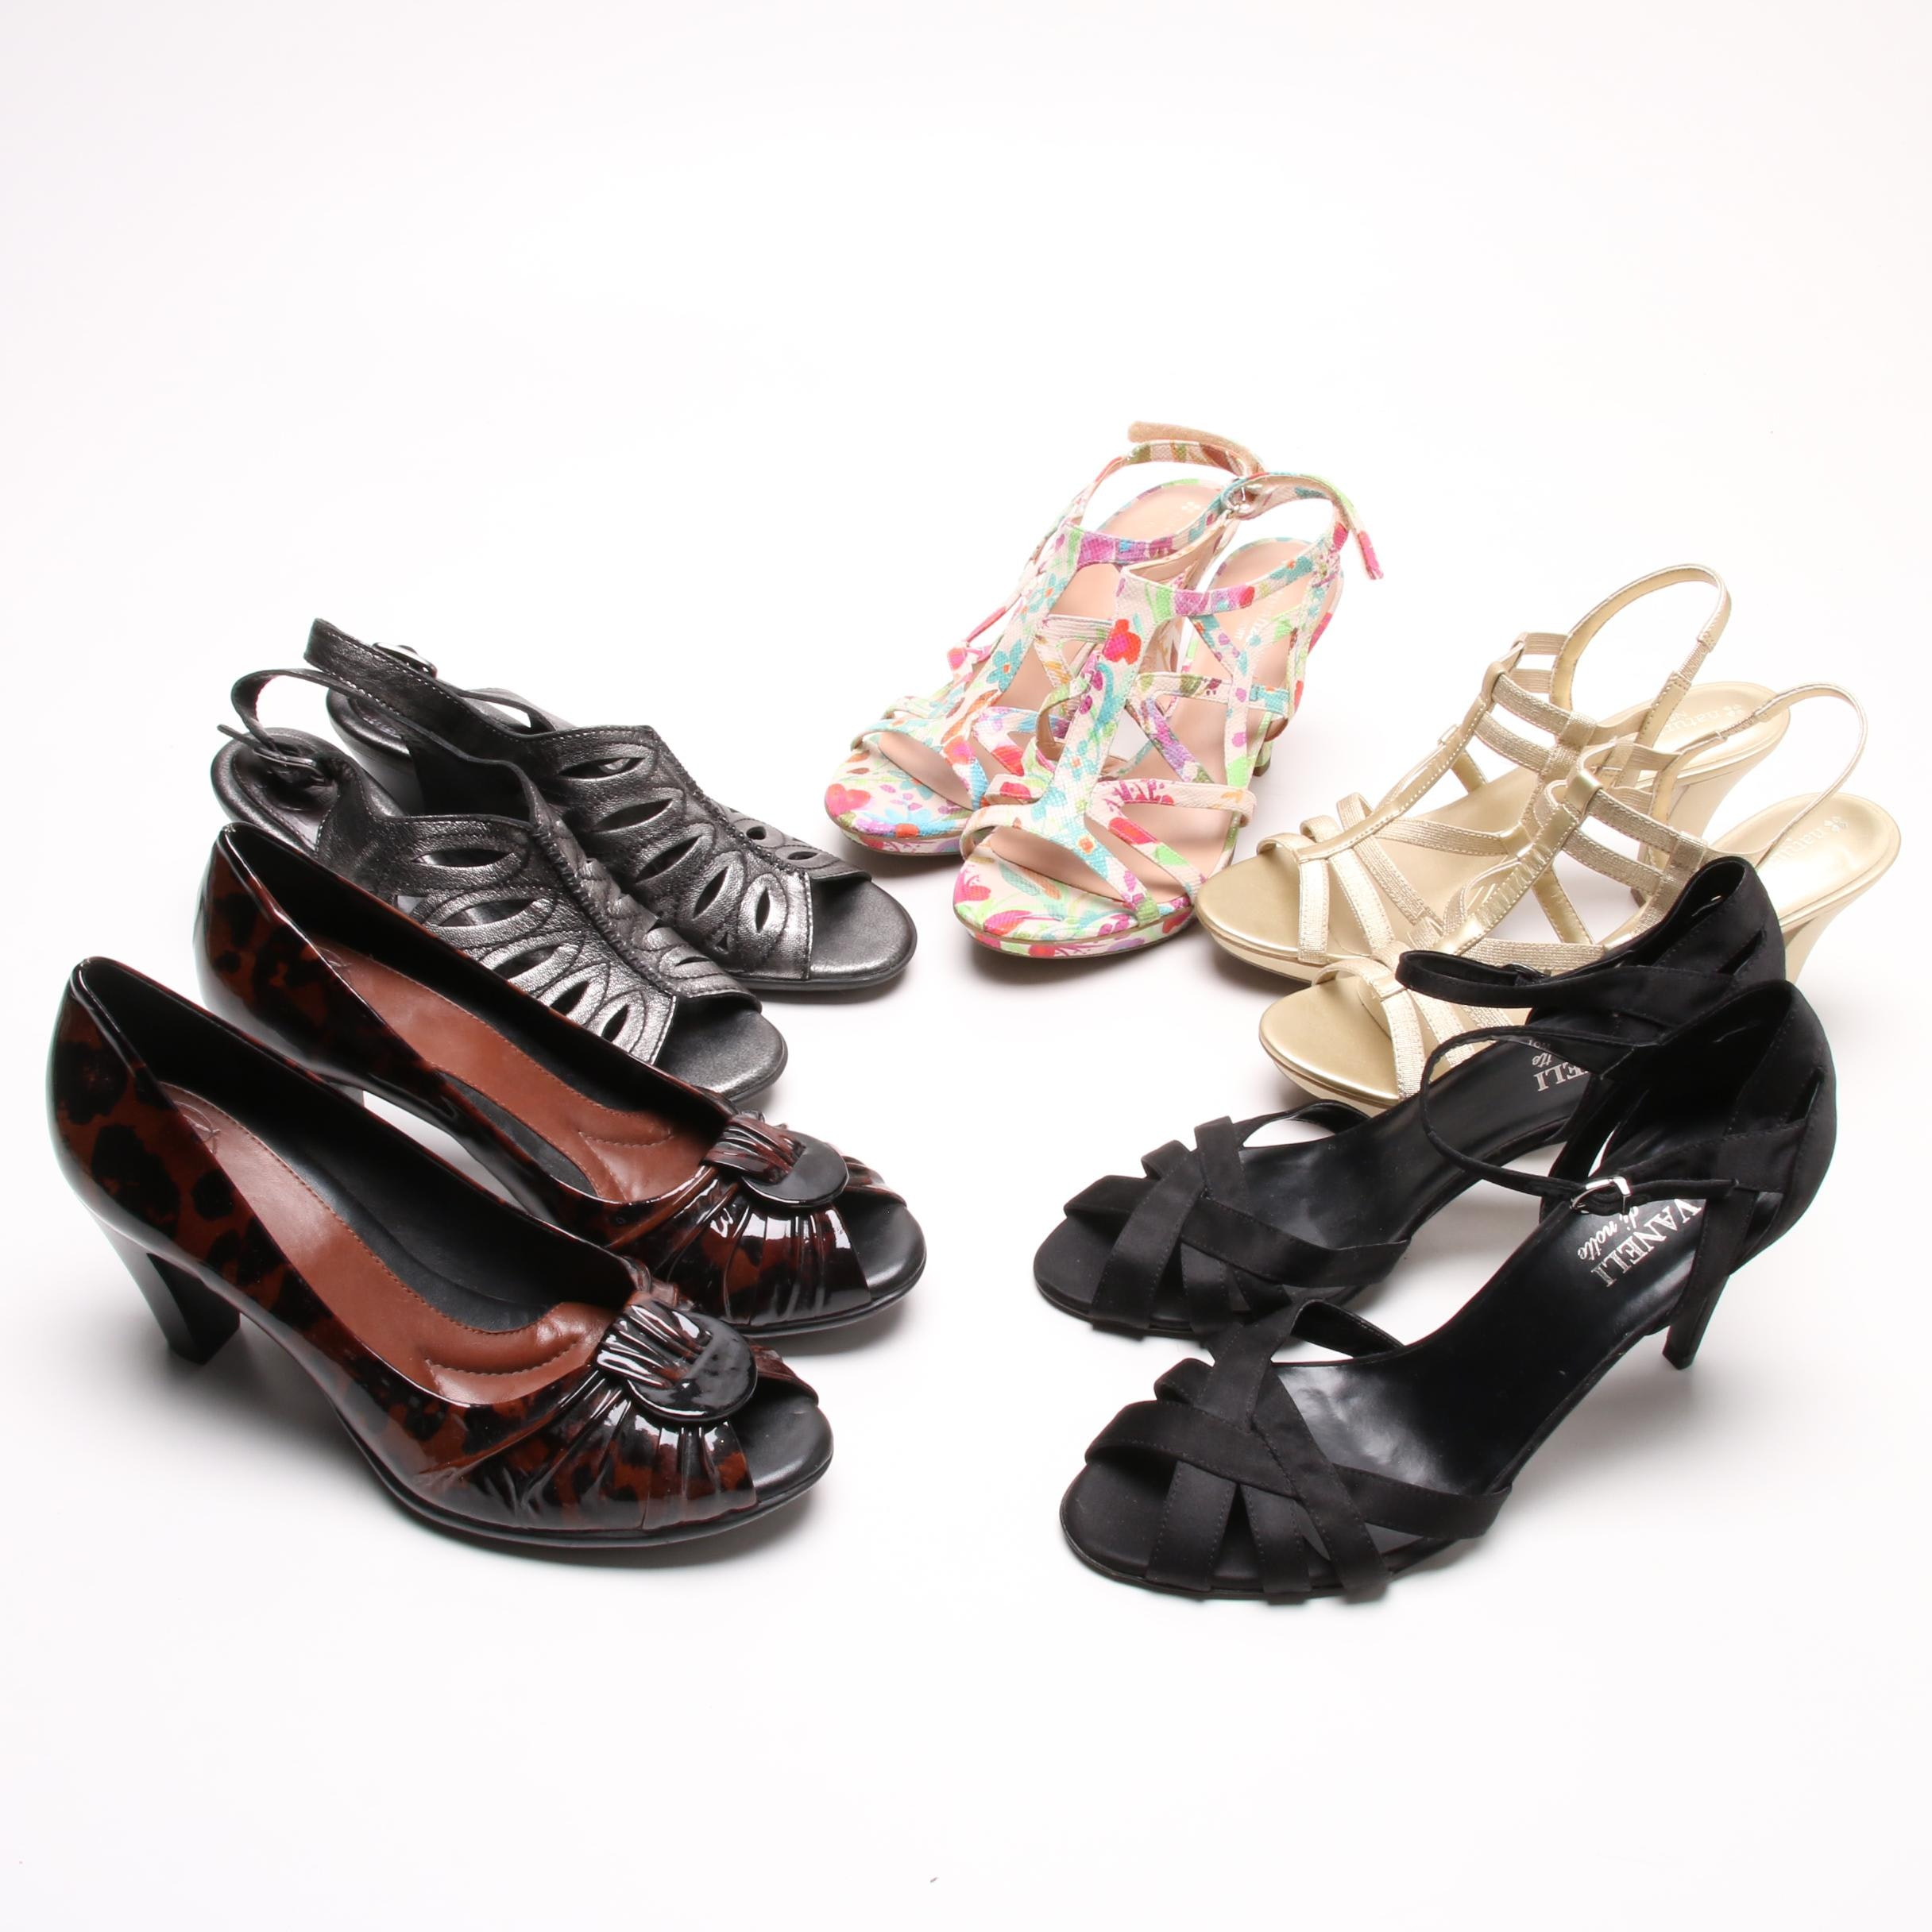 Naturalizer, Vaneli di notte and Nurture High-Heeled Shoes